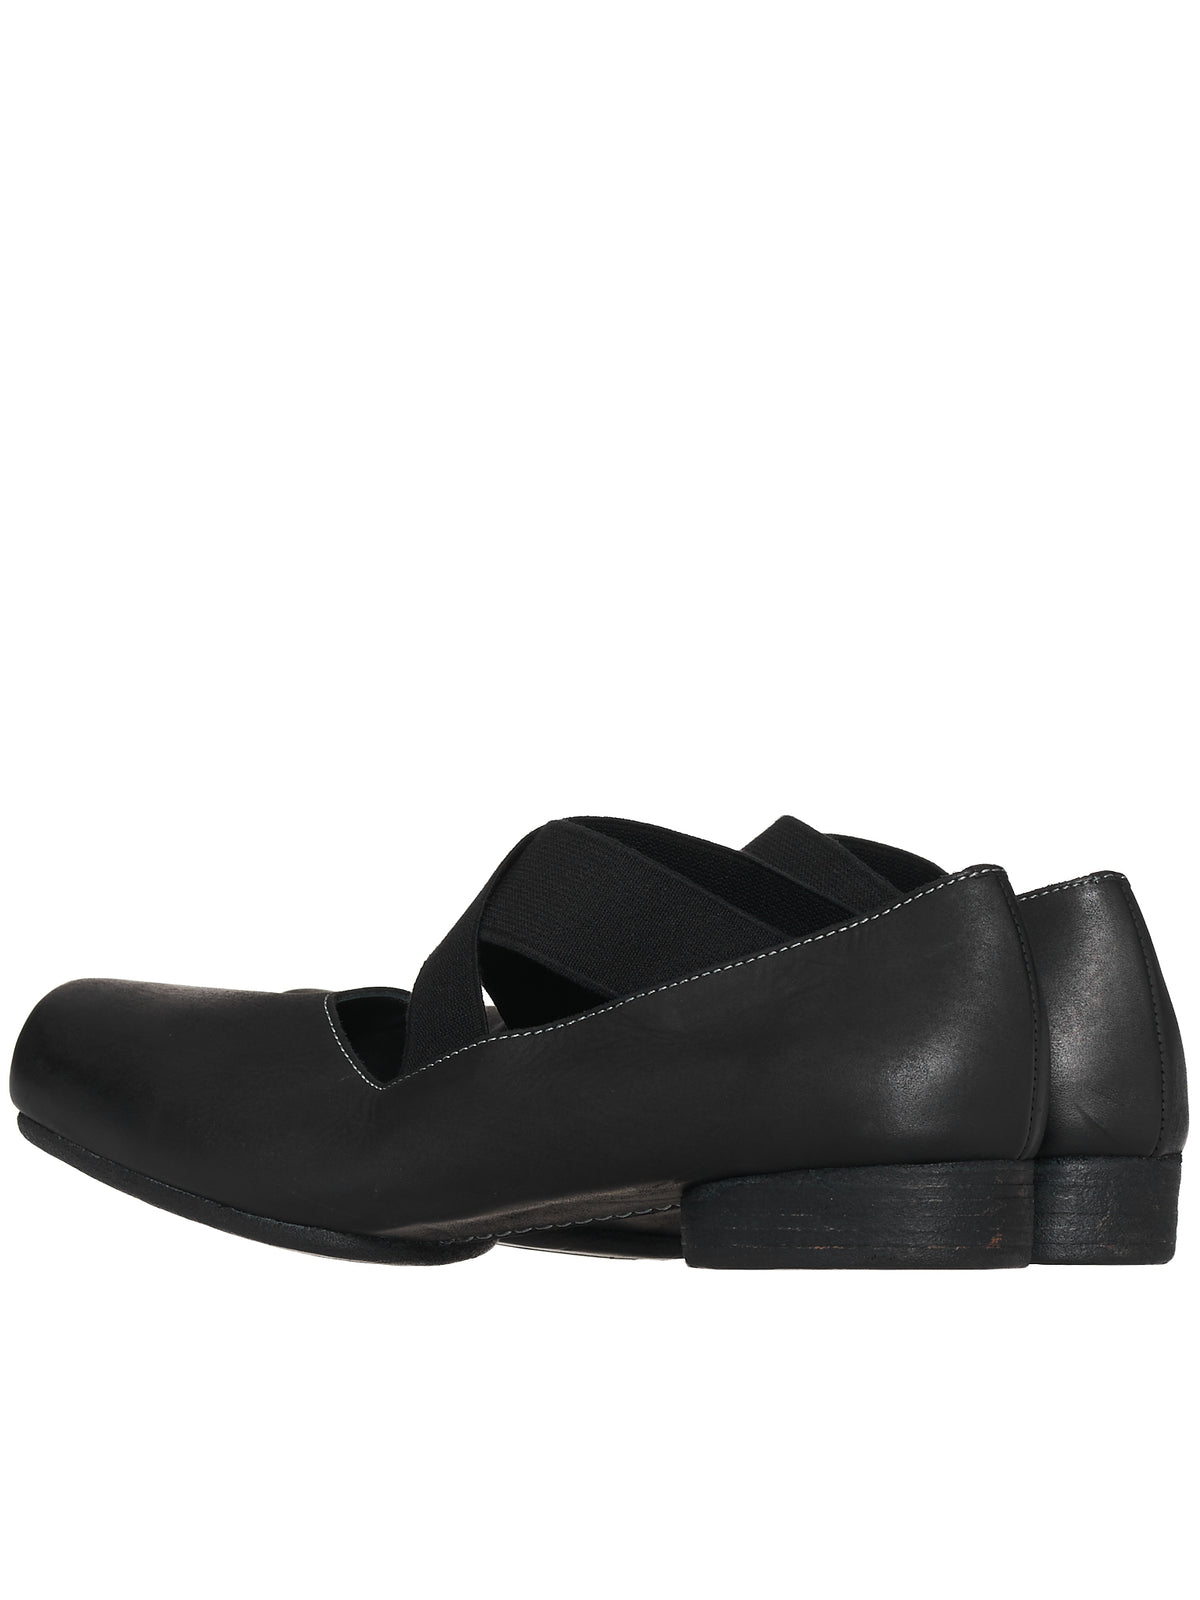 Leather Ballet Shoes (US9001-BLACK)